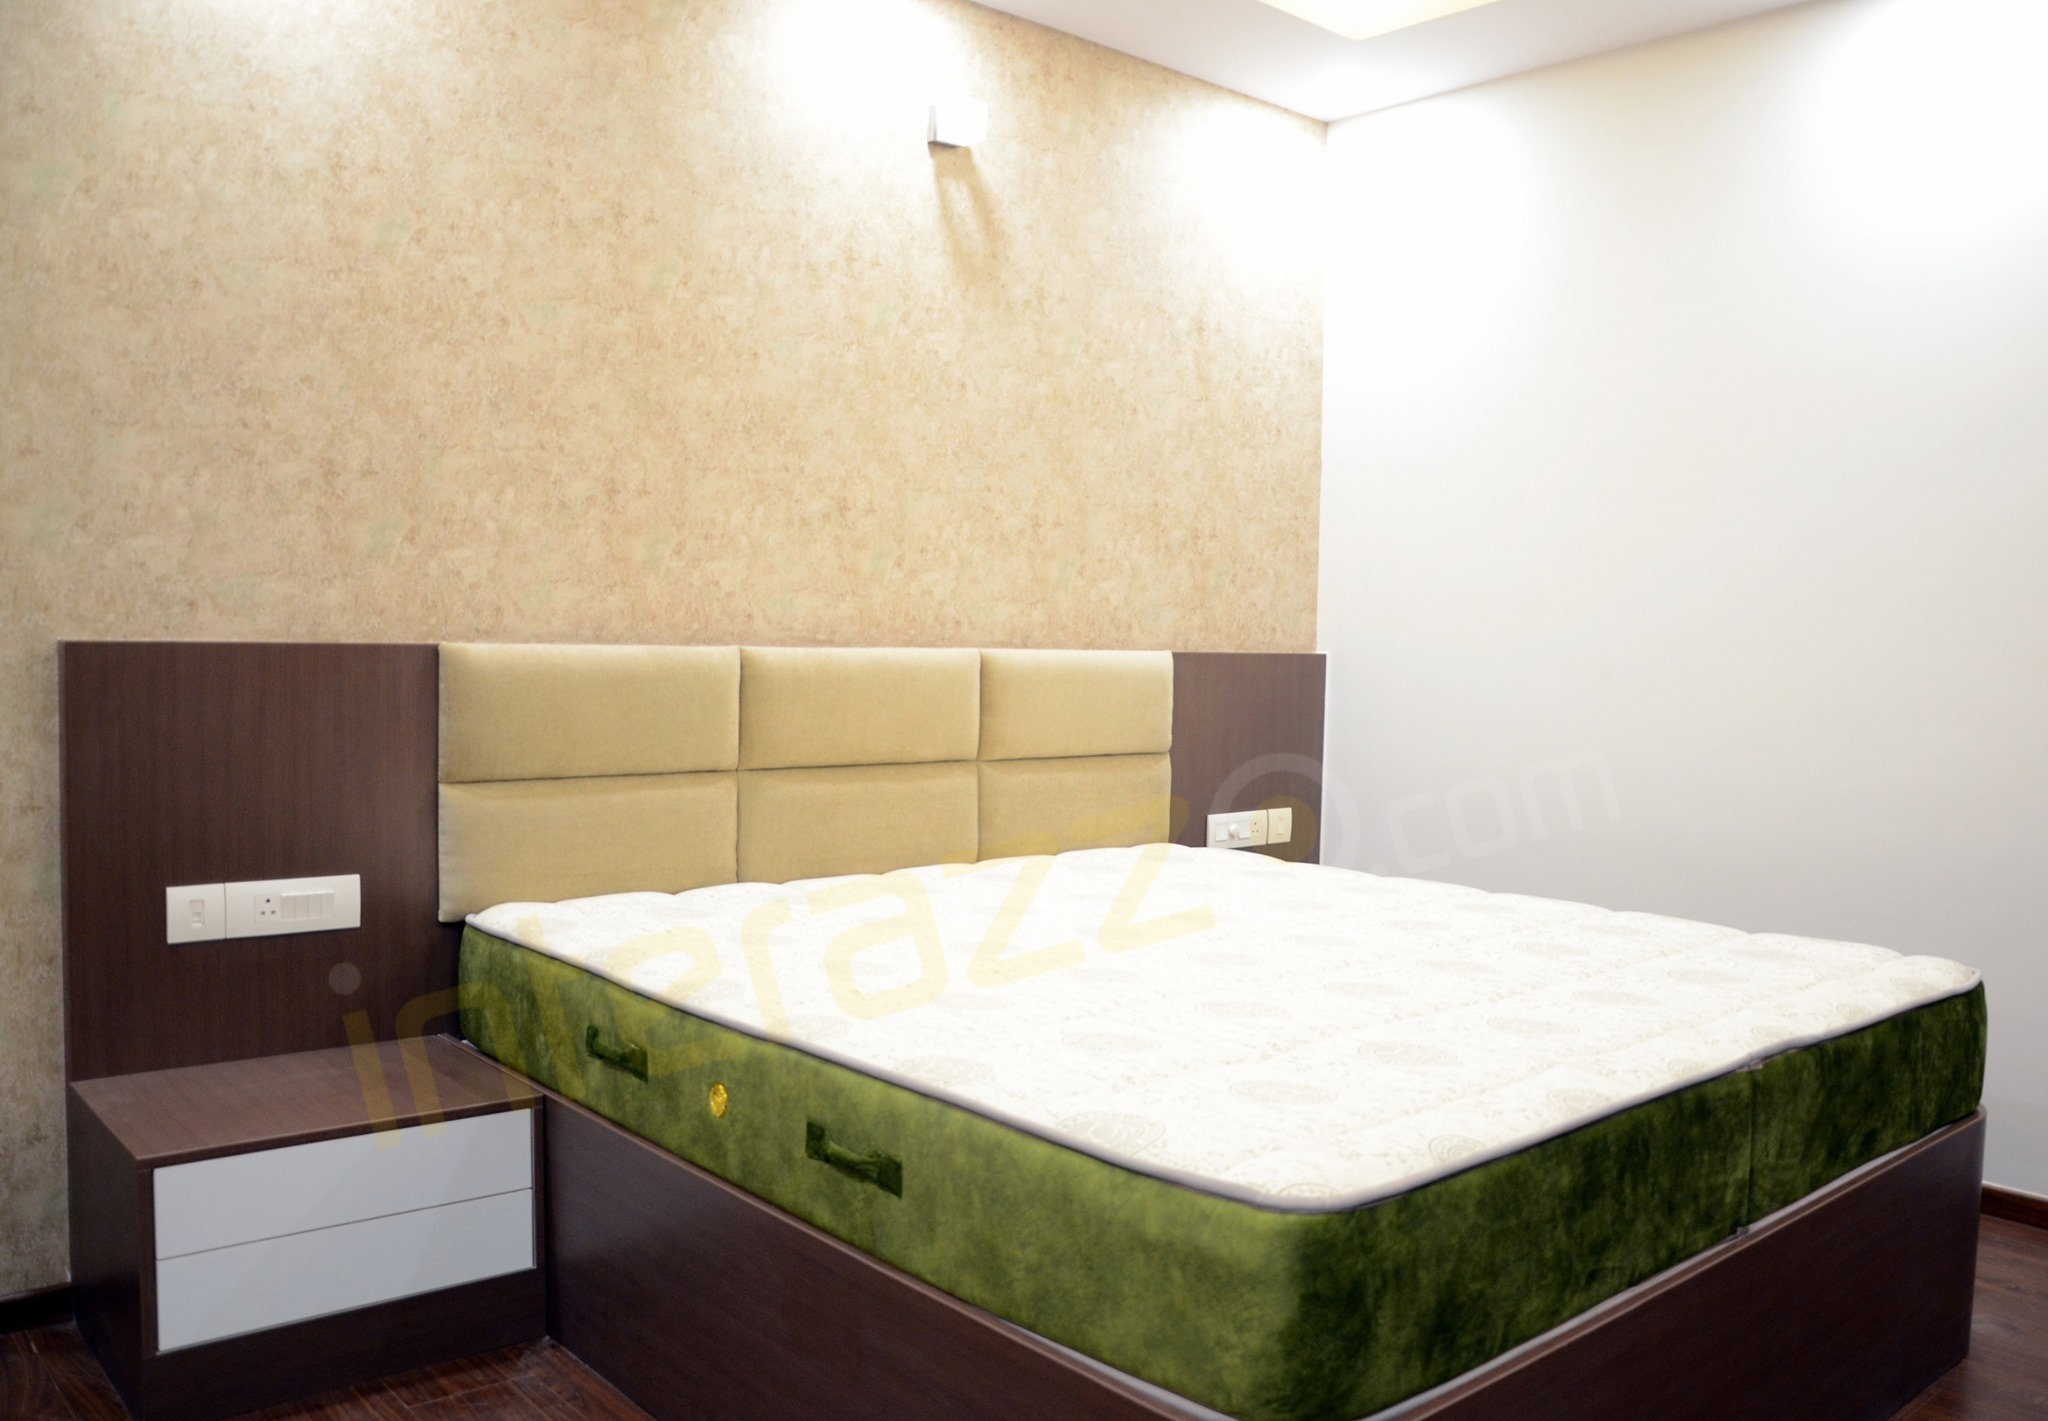 upload/bedroom/King_Size_Cot_With_Wallpaper.jpg